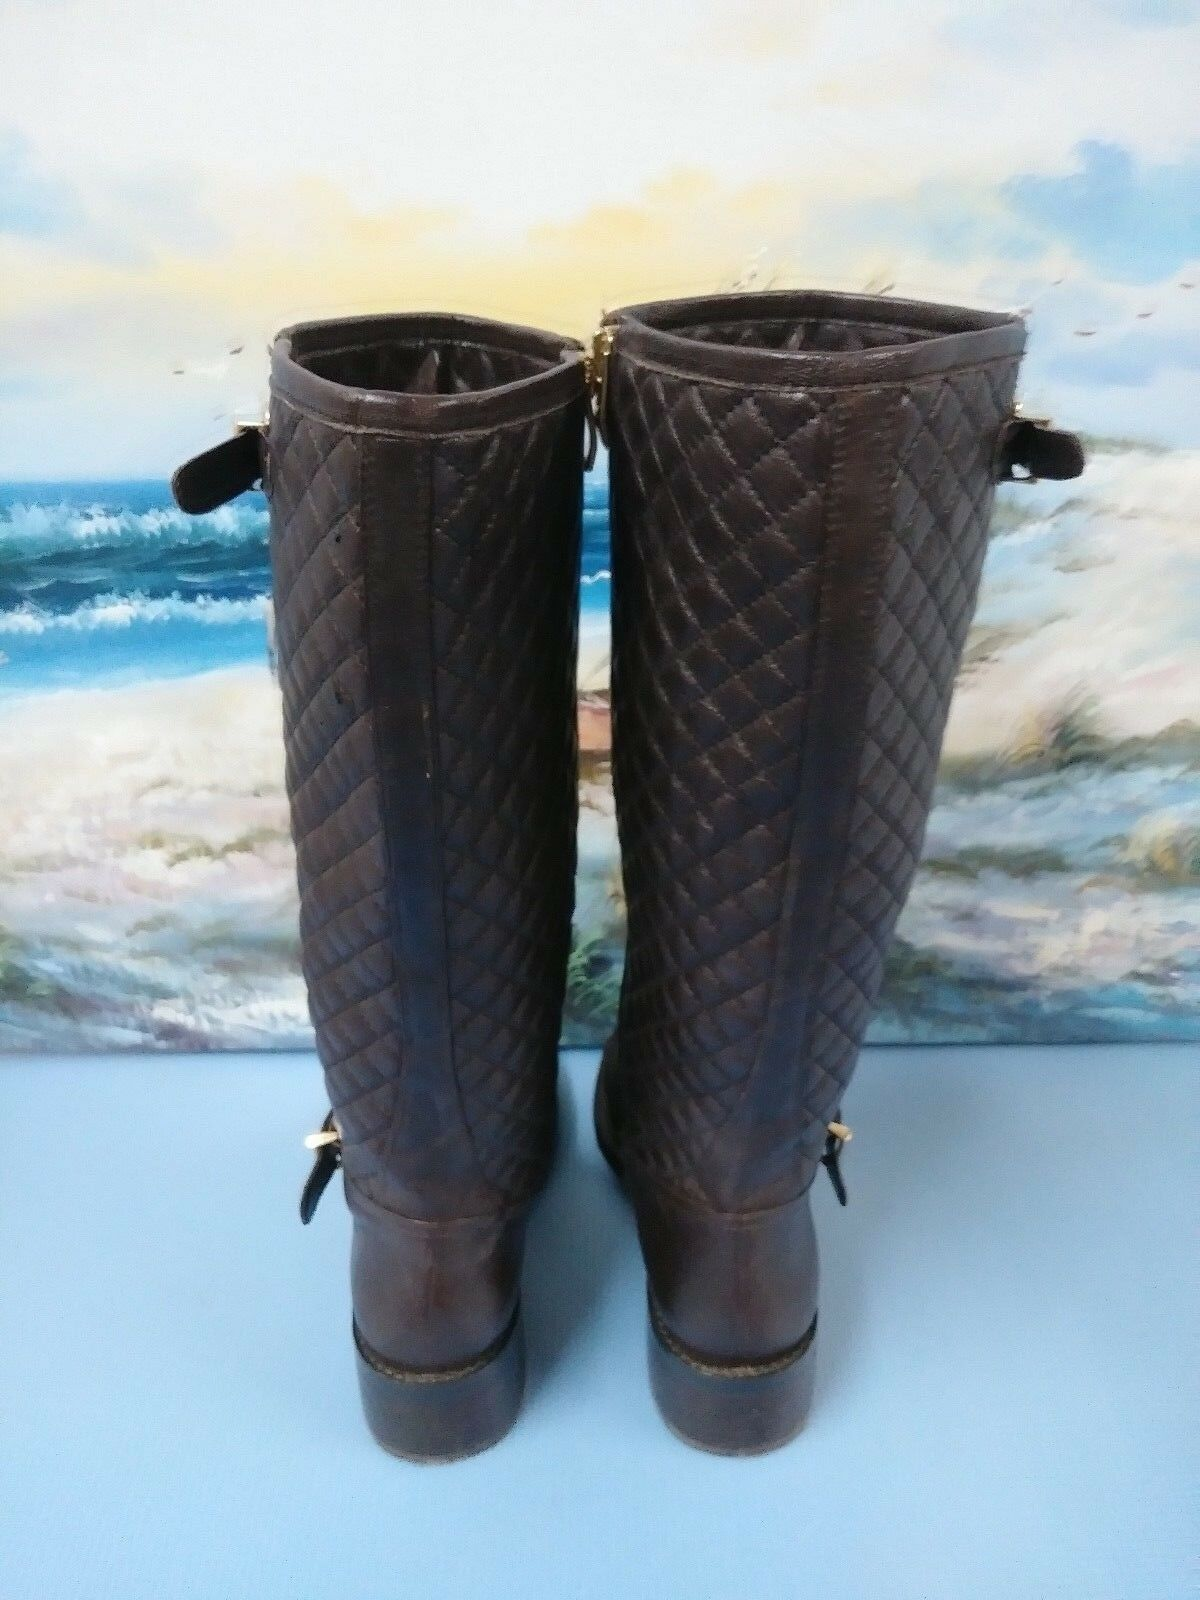 Vince Camuto Tall Dark Brown Leather Side Side Side Zip Harness Boots Women's Size 7 M 958af5